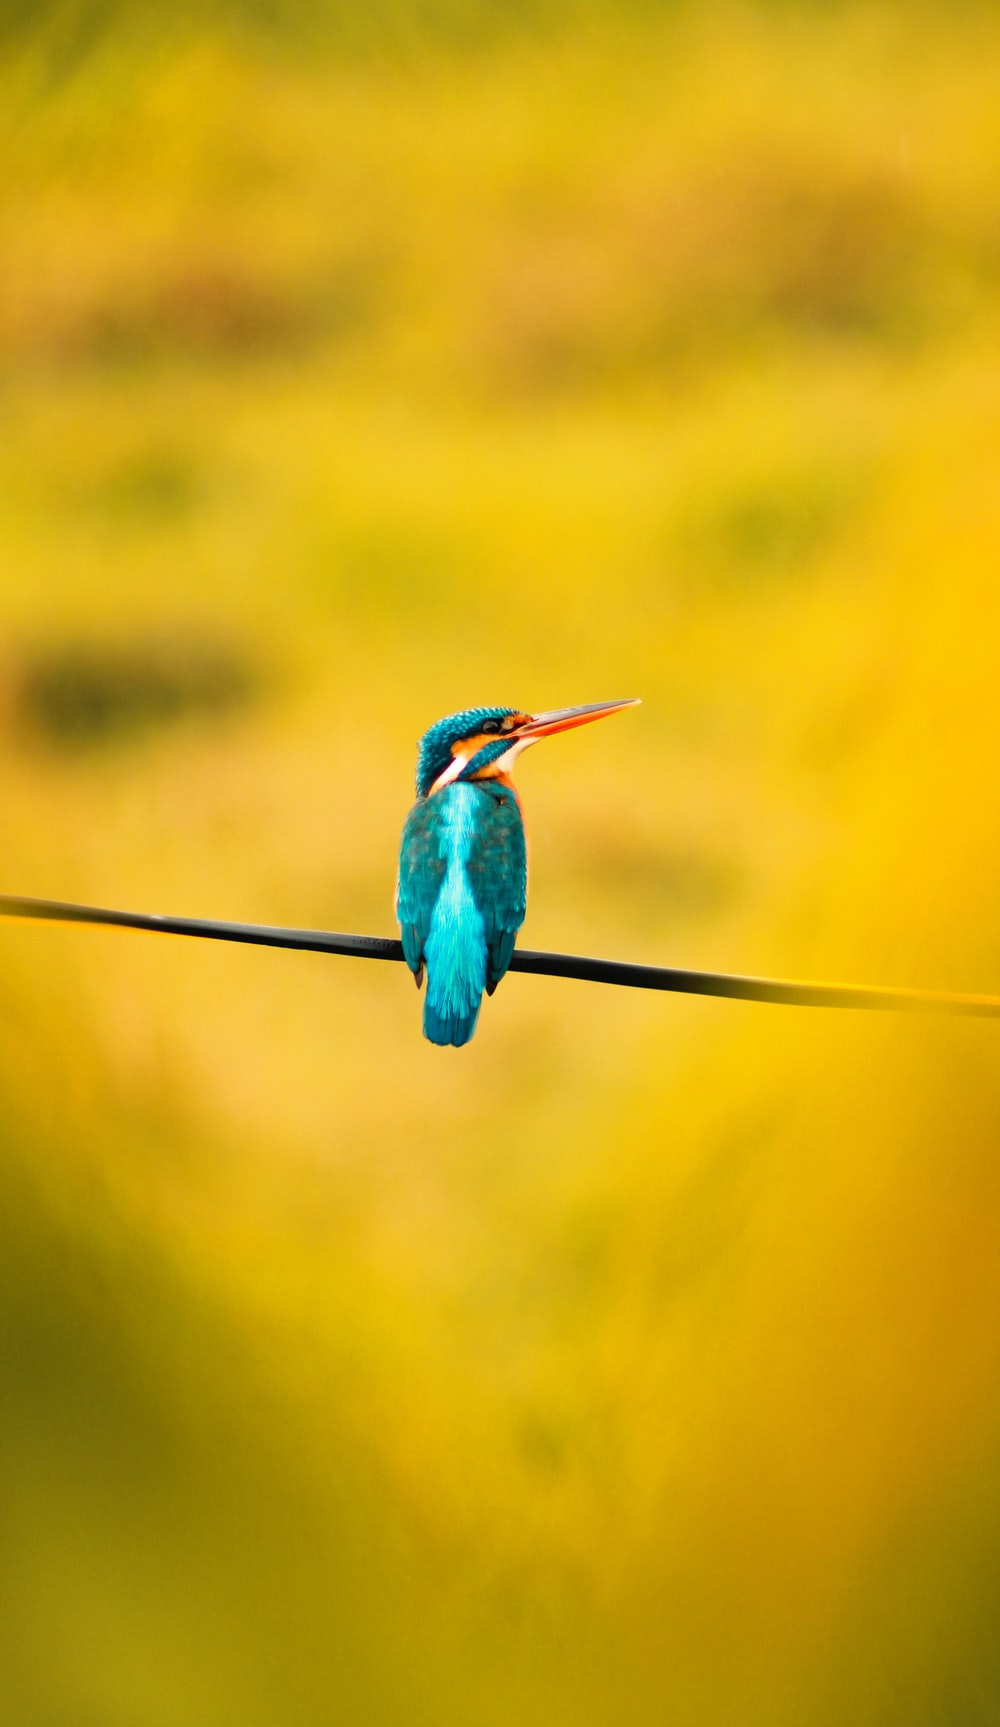 blue and green bird on black wire